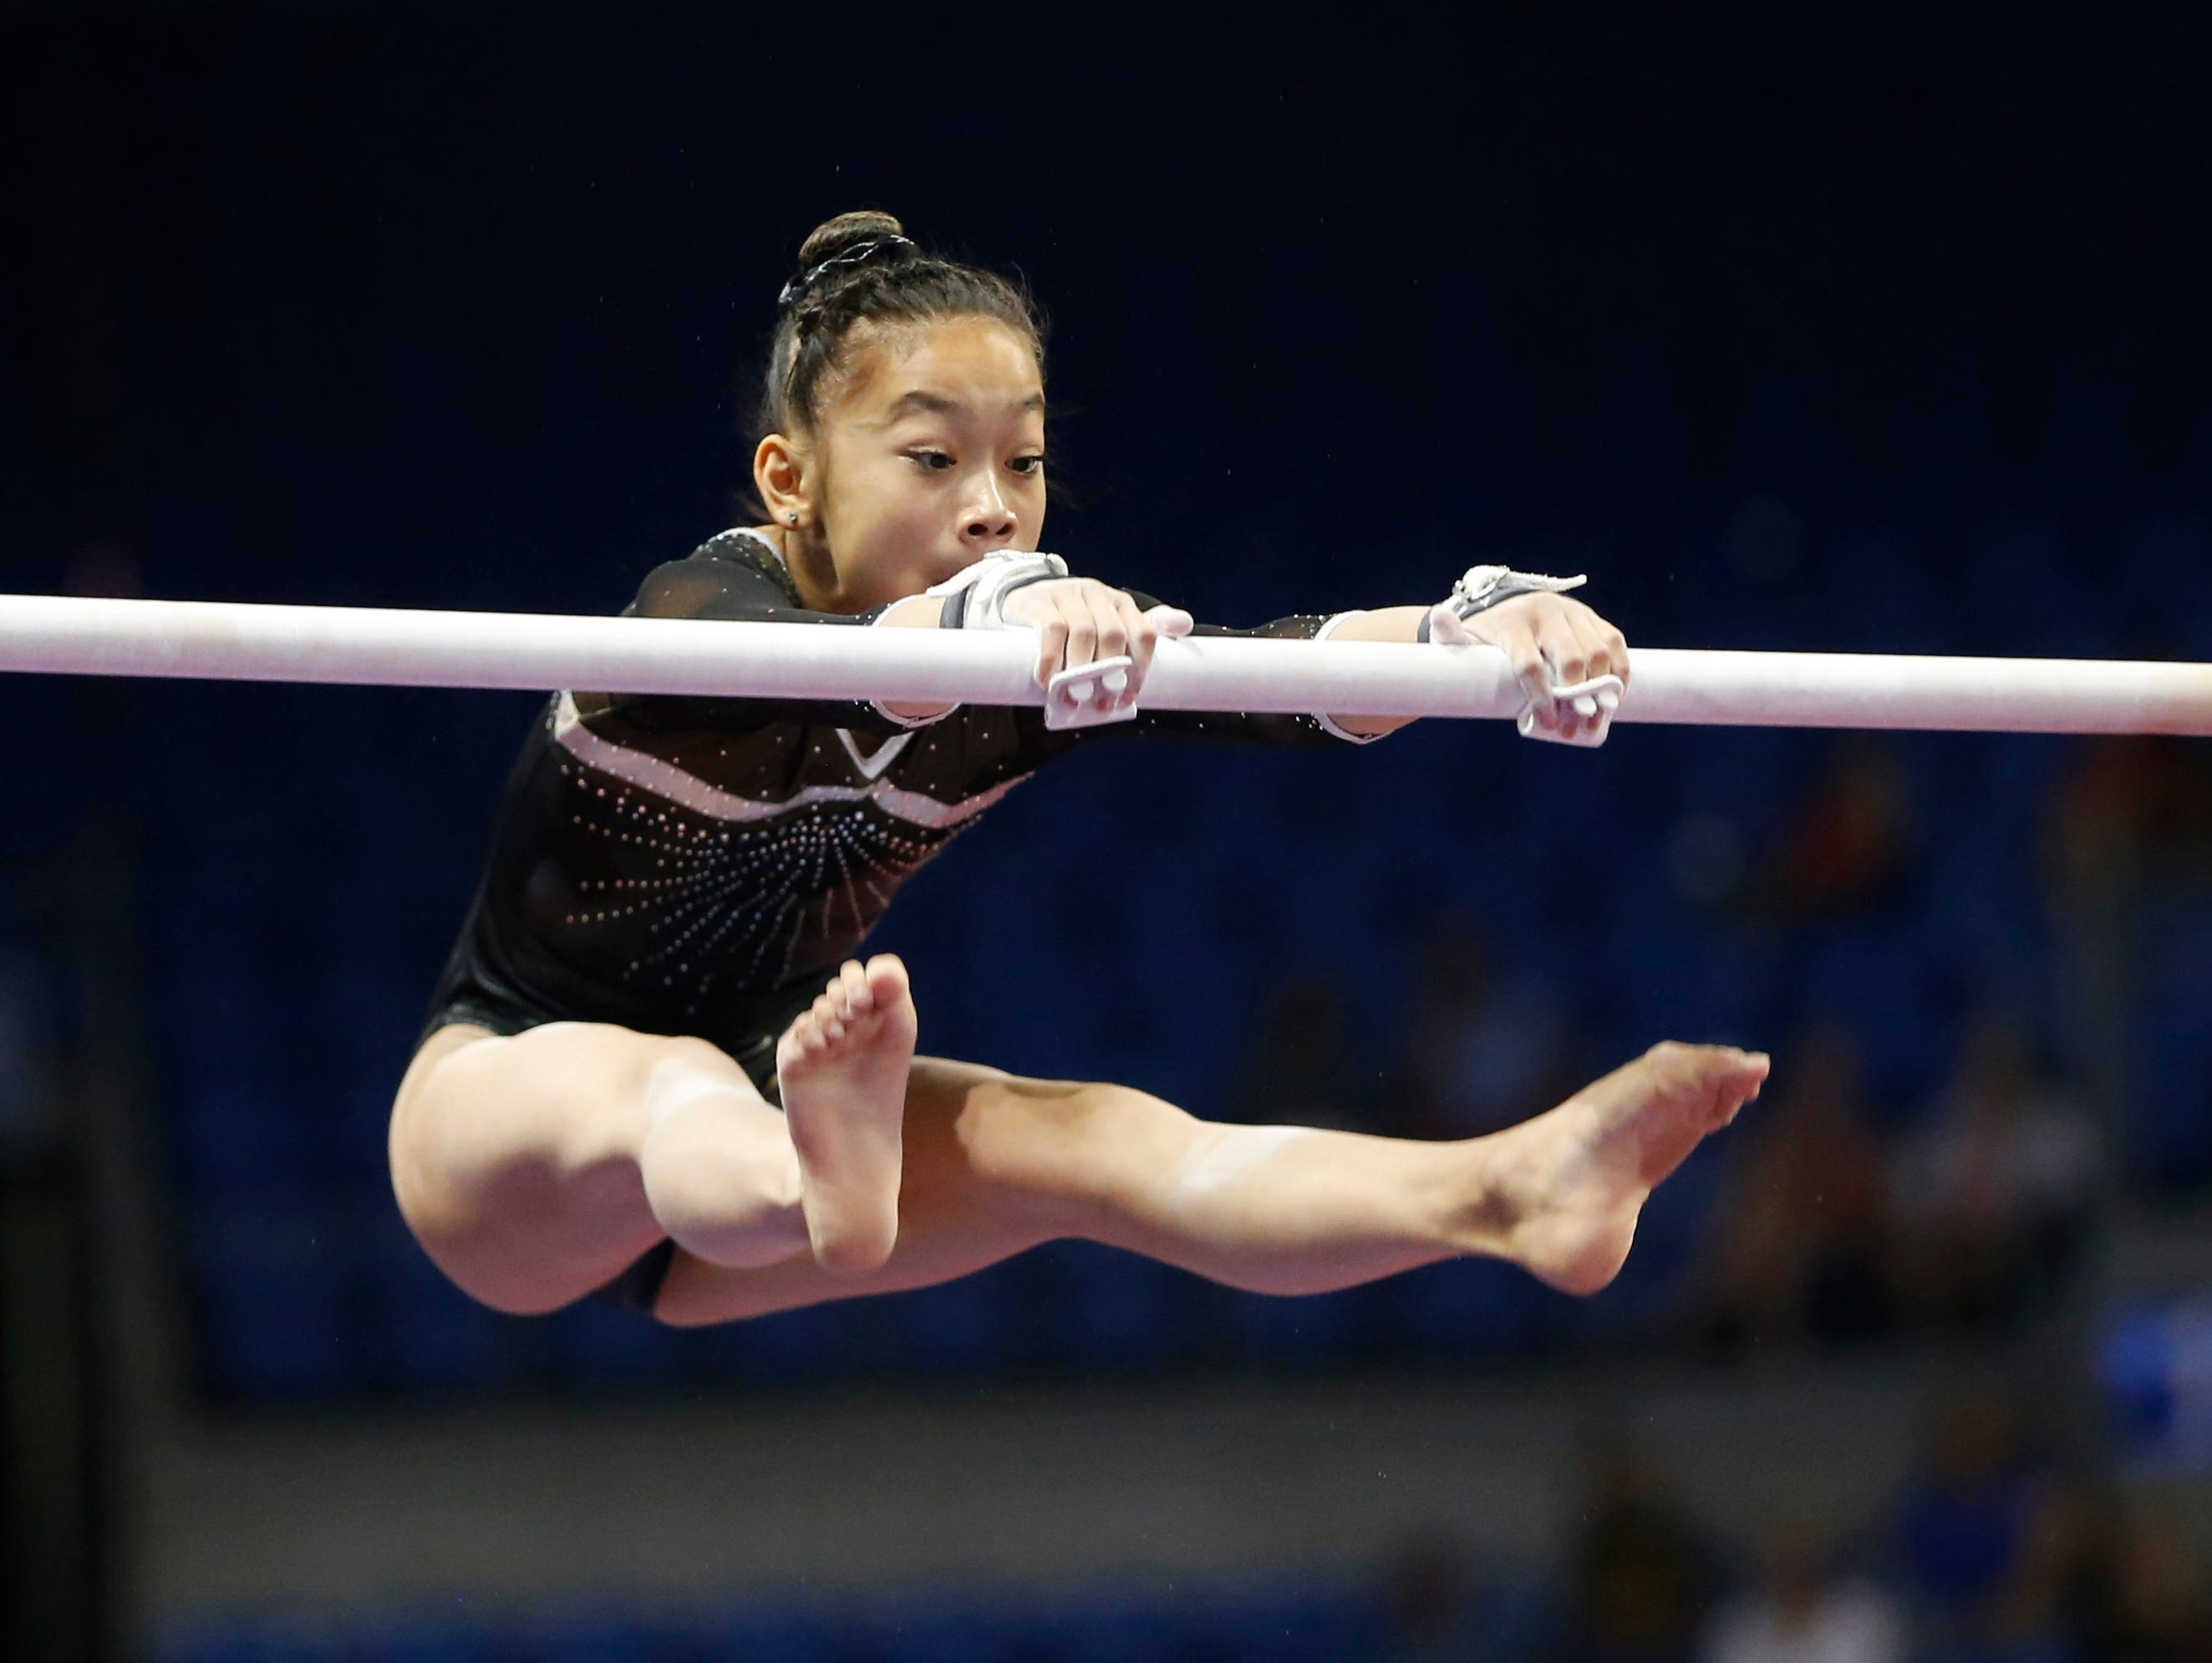 Iowa City's Adeline Kenlin competes in the uneven bars Sunday, June 26, 2016, during the second day of the junior women's event at the P&G Gymnastics Championships at Chaifetz Arena in St. Louis.